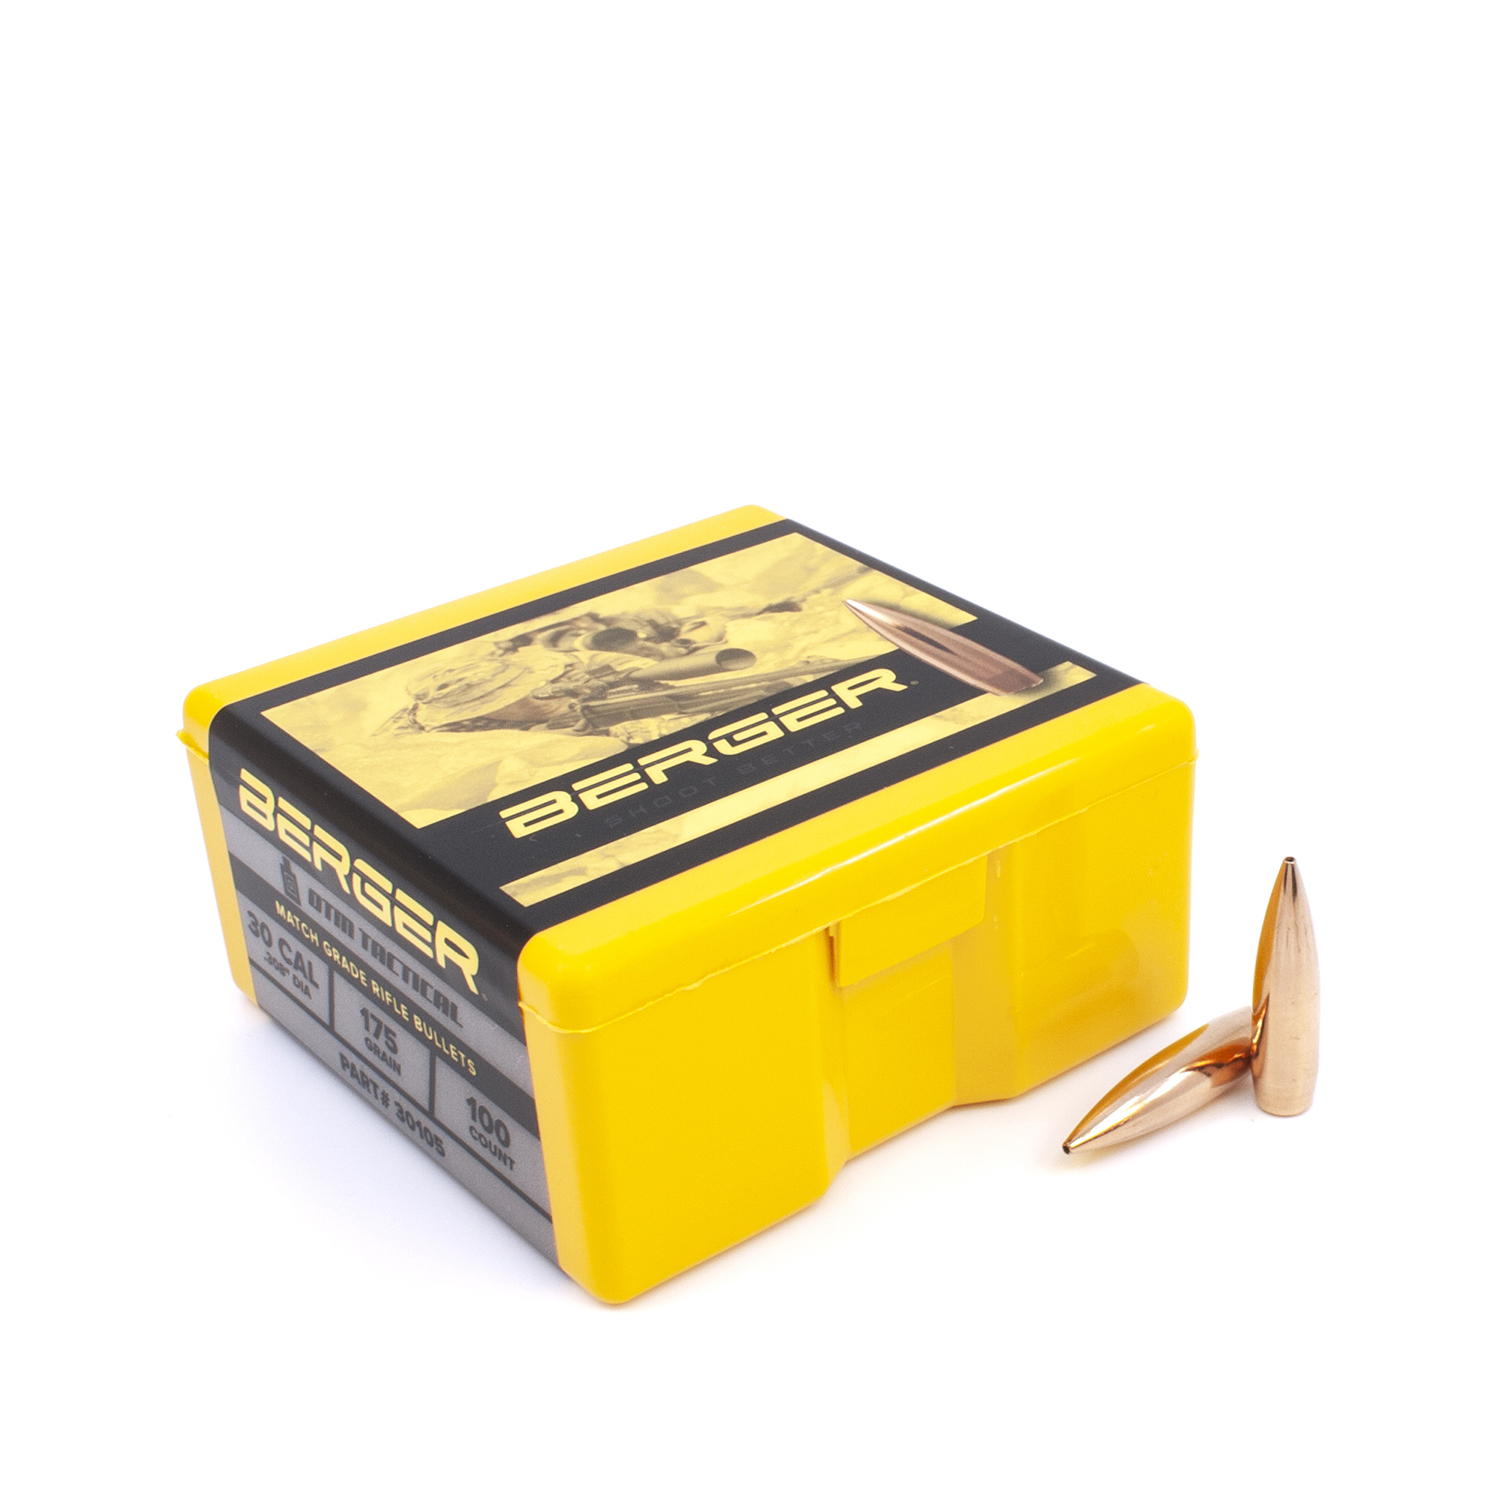 Berger Bullets - .30cal, 175 gr. OTM Tactical - Box of 100